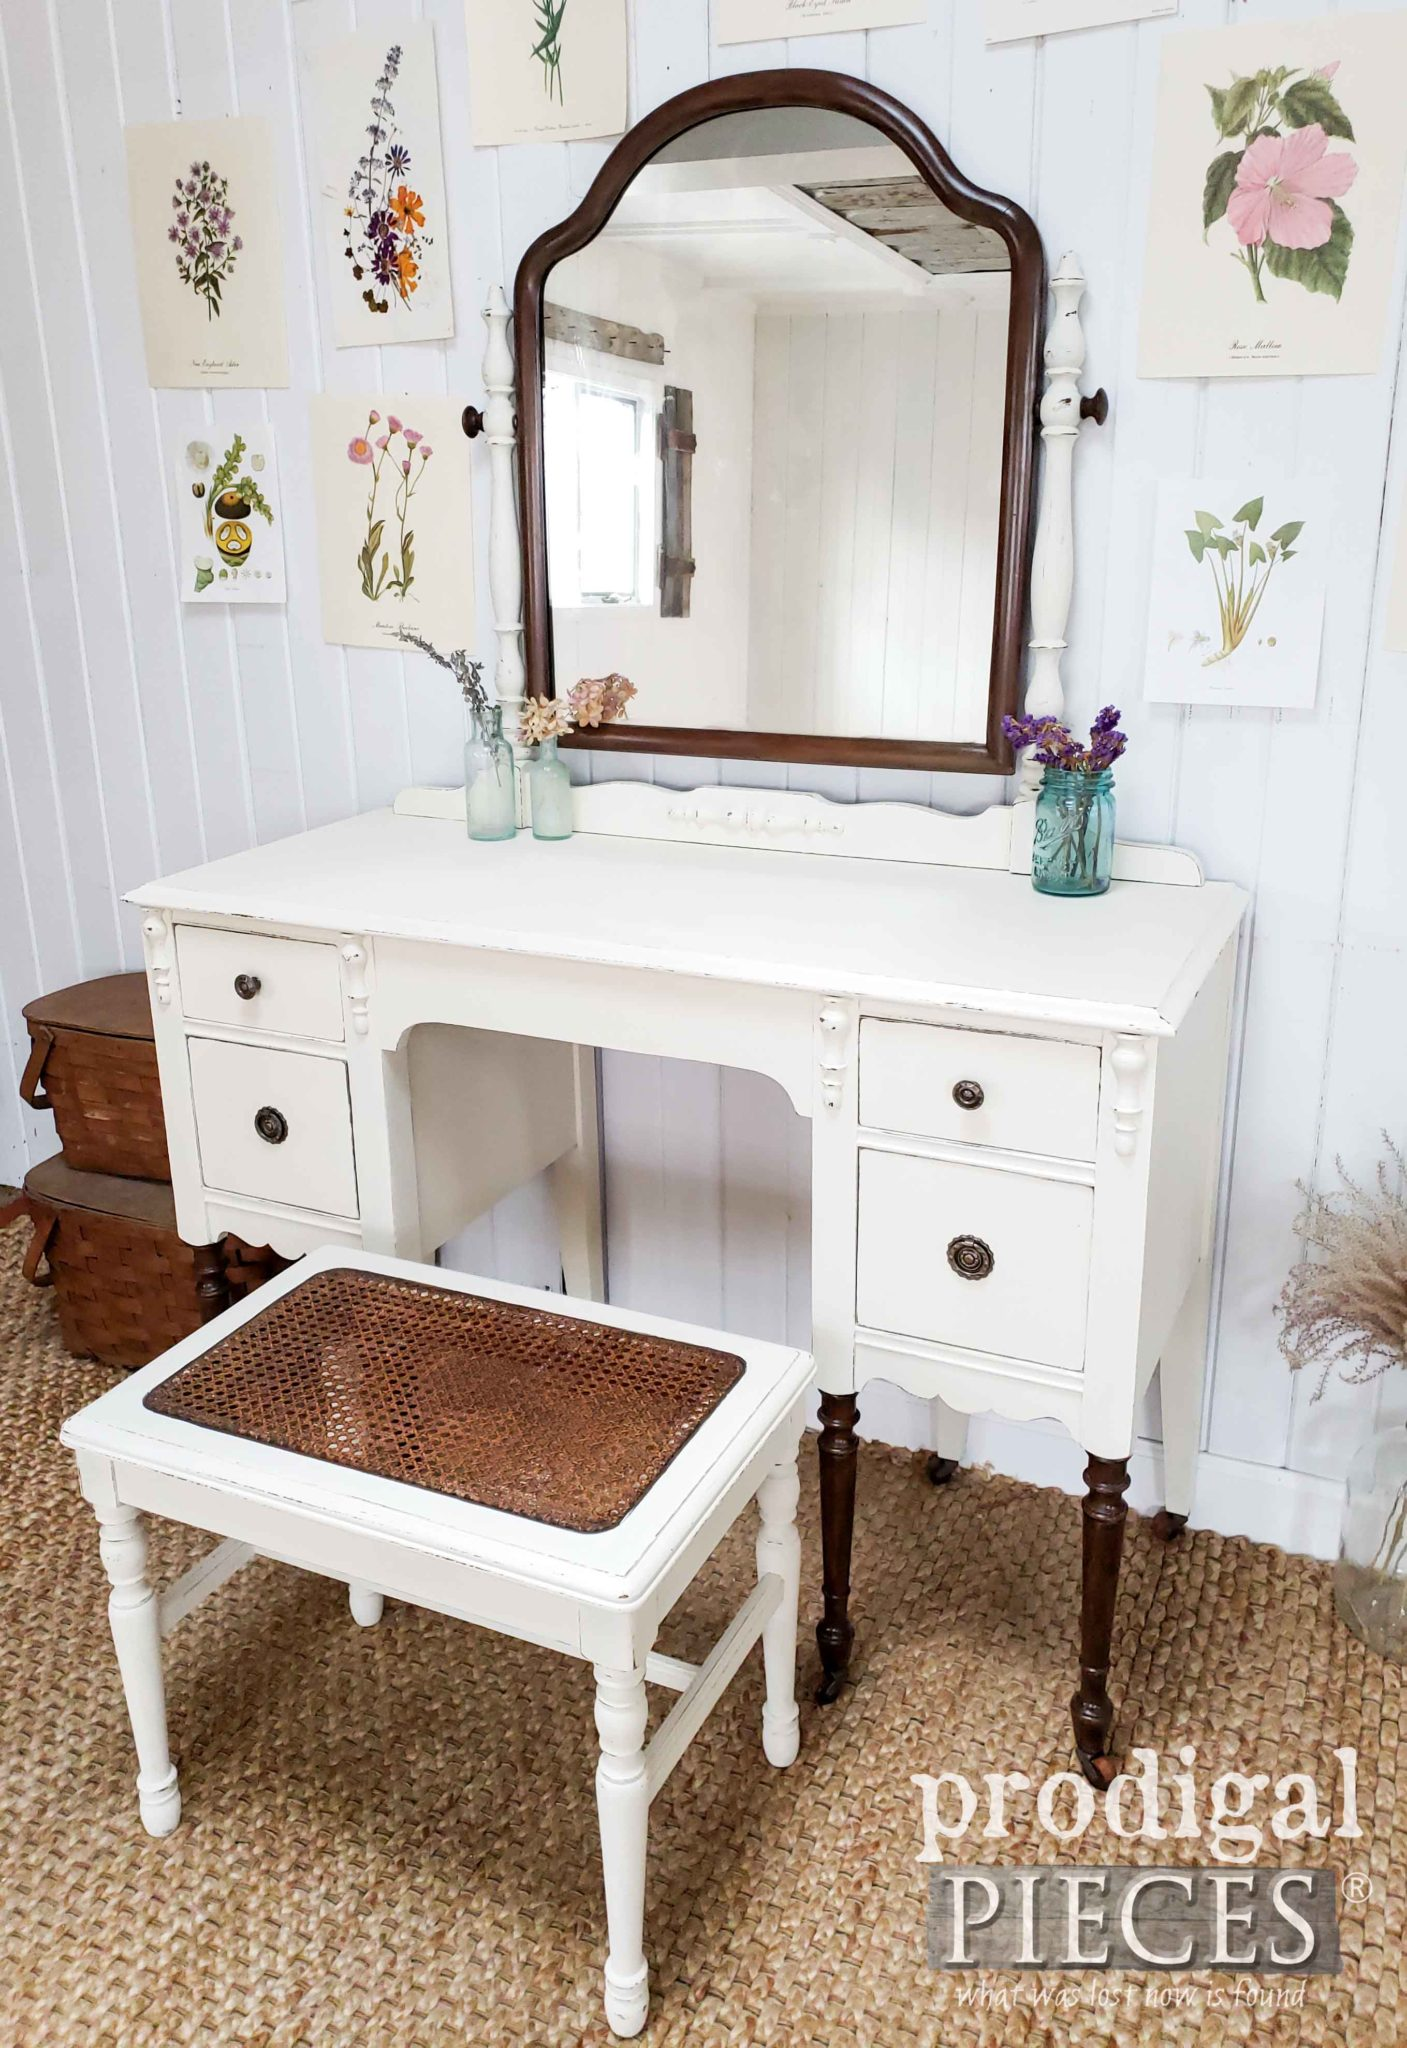 Creamy White Antique Dressing Table Set with Caned Bench Seat by Larissa of Prodigal Pieces | prodigalpieces.com #prodigalpieces #furniture #farmhouse #home #homedecor #homedecorideas #shopping